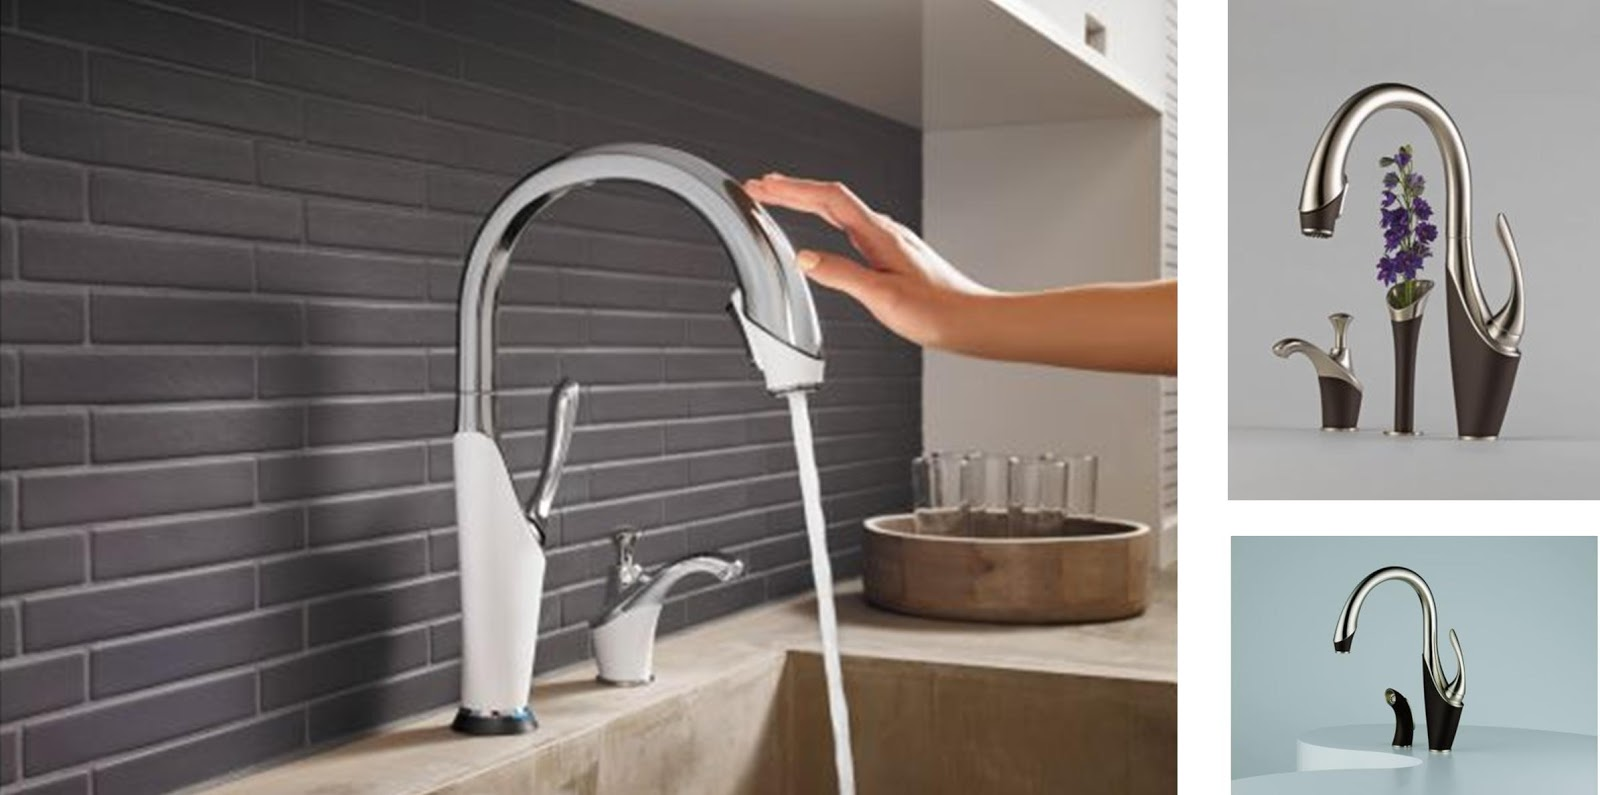 Touch Technology Kitchen Faucet Time2design Custom Cabinetry And Interior Design Kitchen And Bath